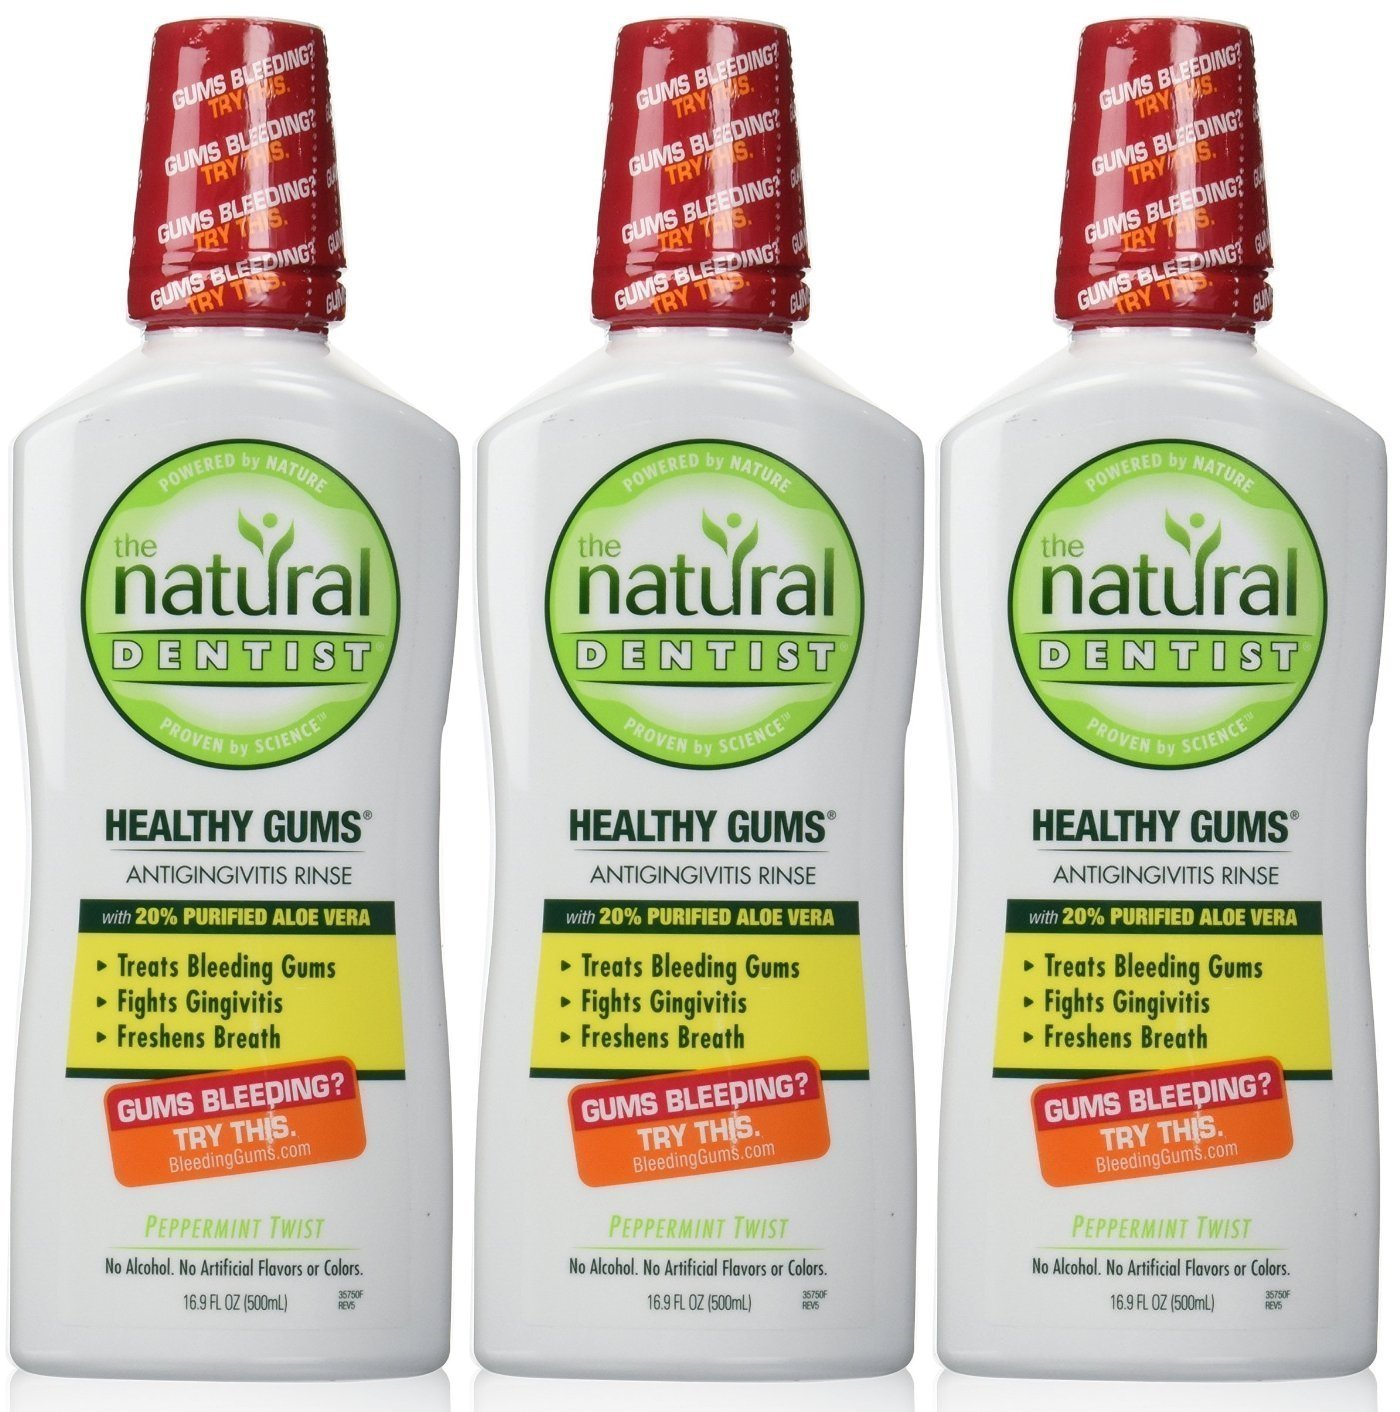 The Natural Dentist Healthy Gums Antigingivitis Rinse, Peppermint Twist, 16.9 Ounce (Pack of 3) by Natural Dentist